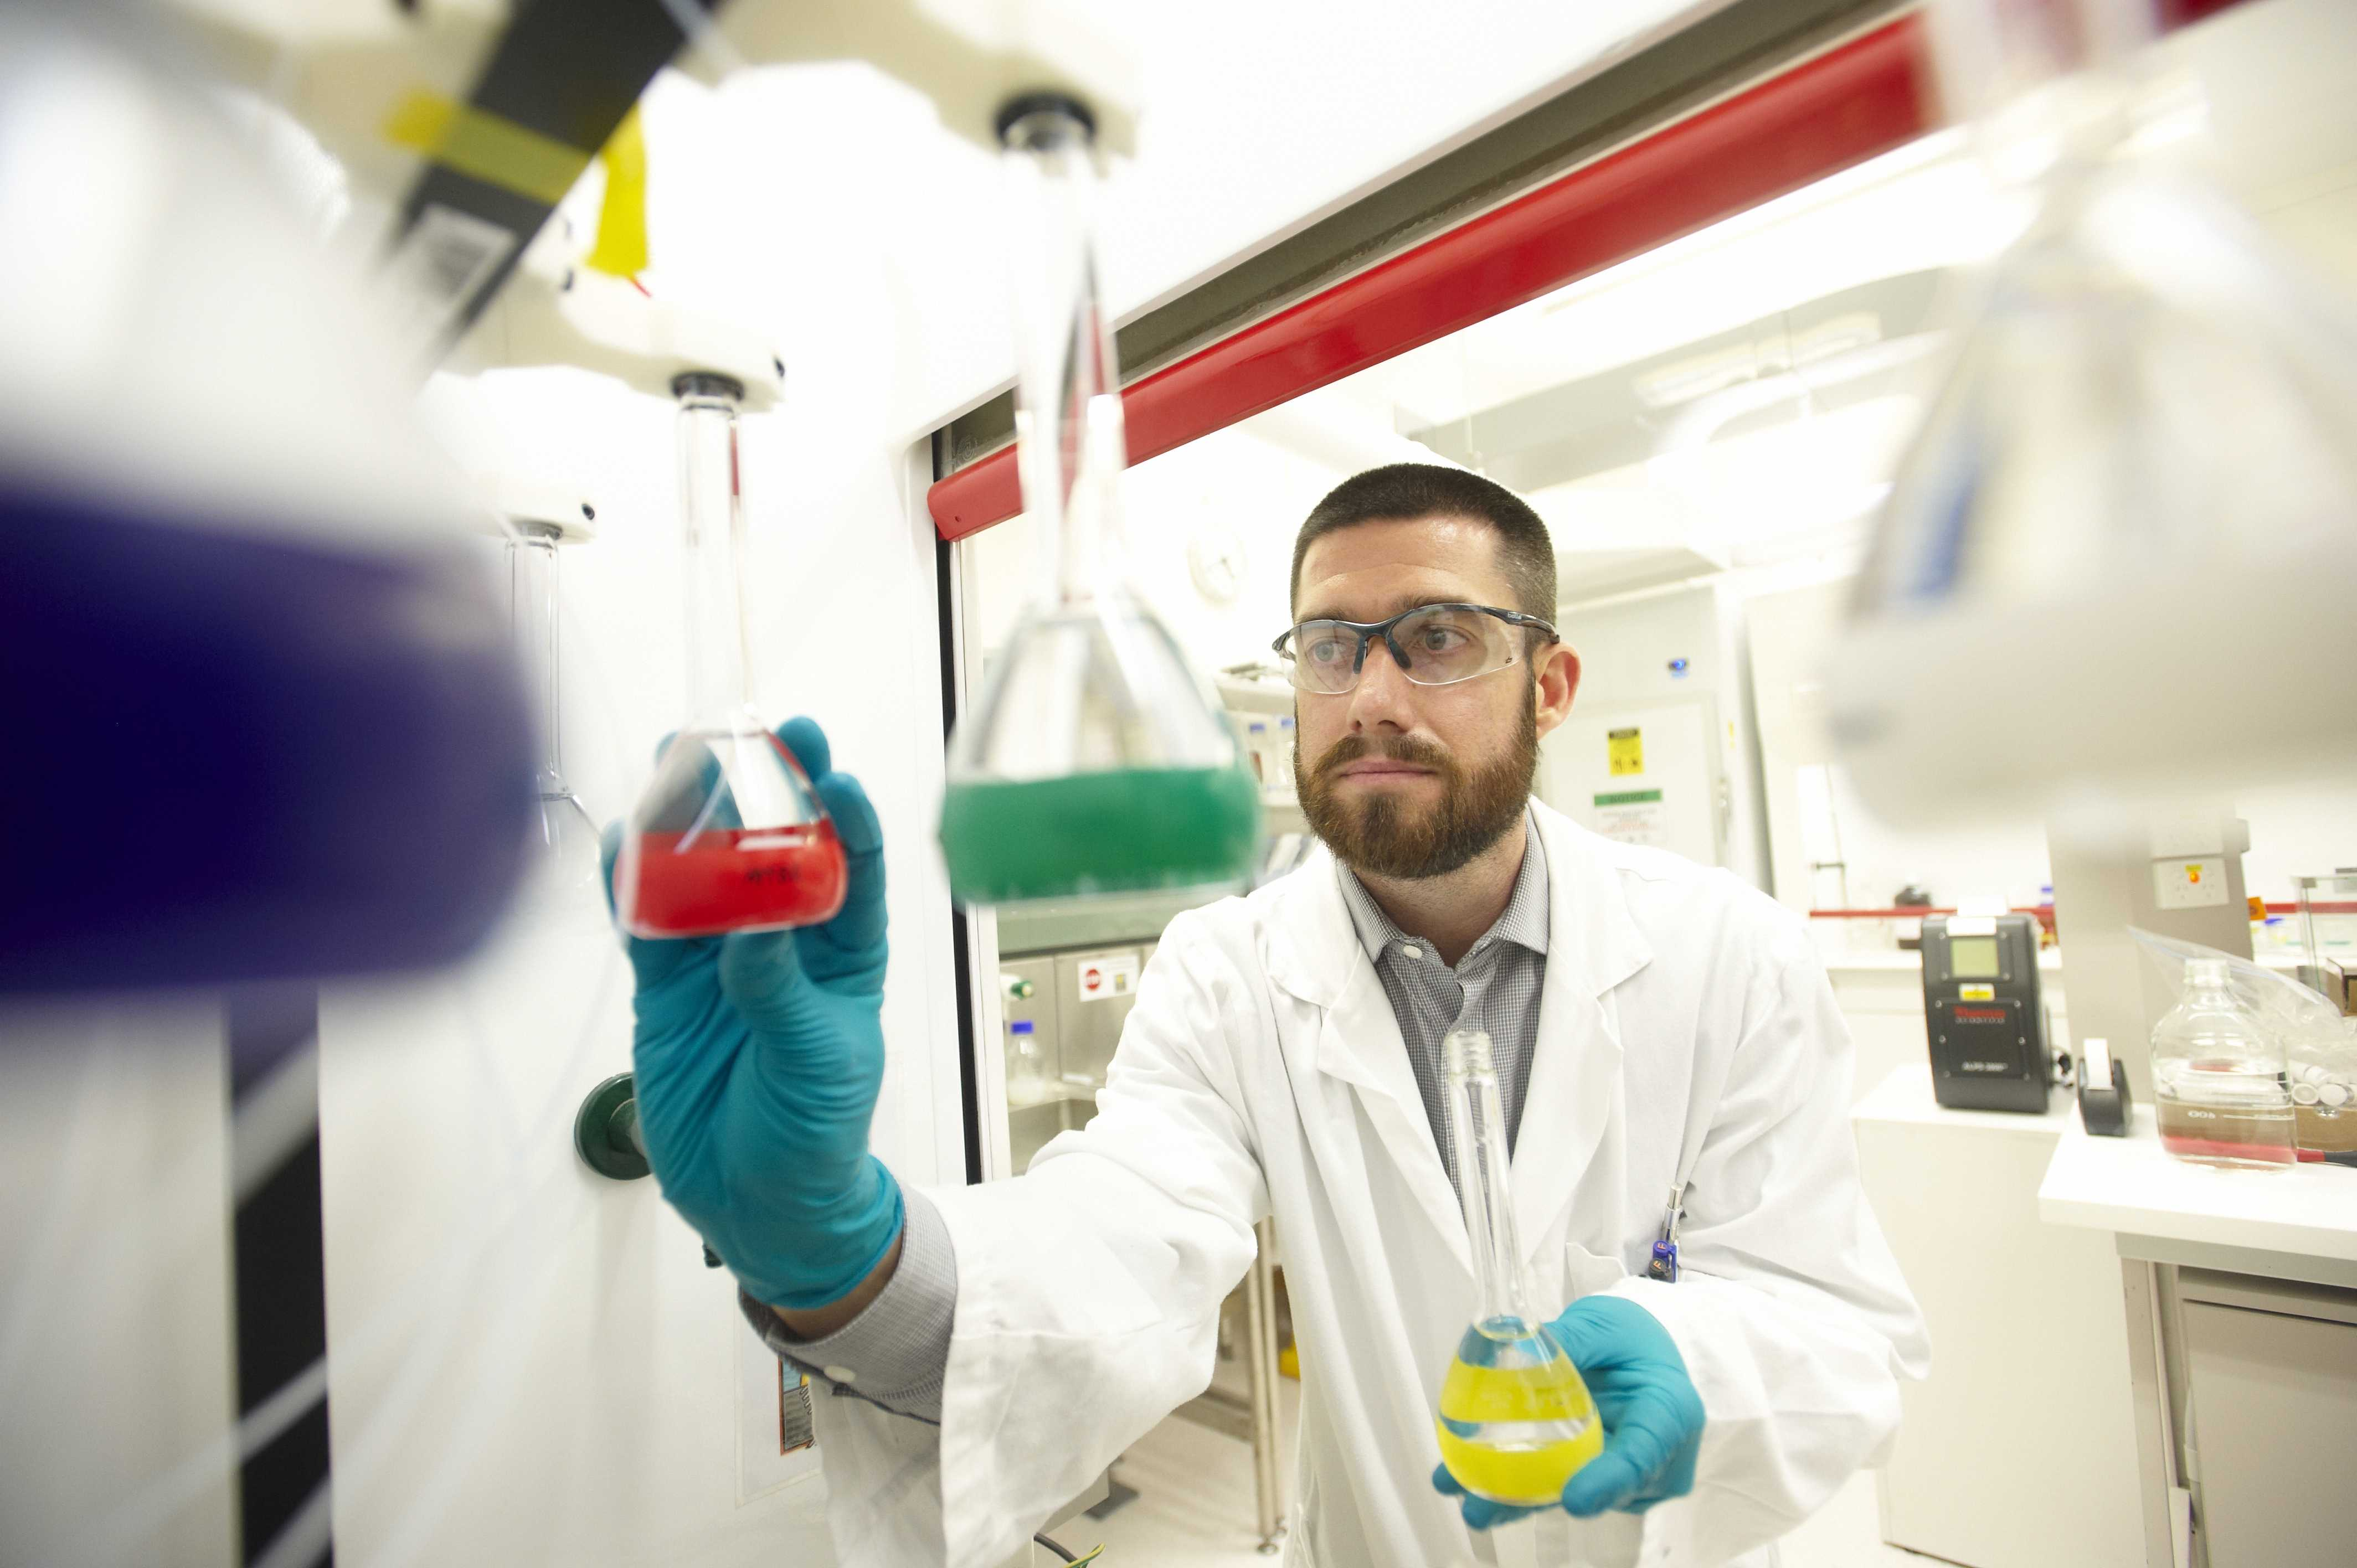 A male scientist works in the lab wearing gloves.